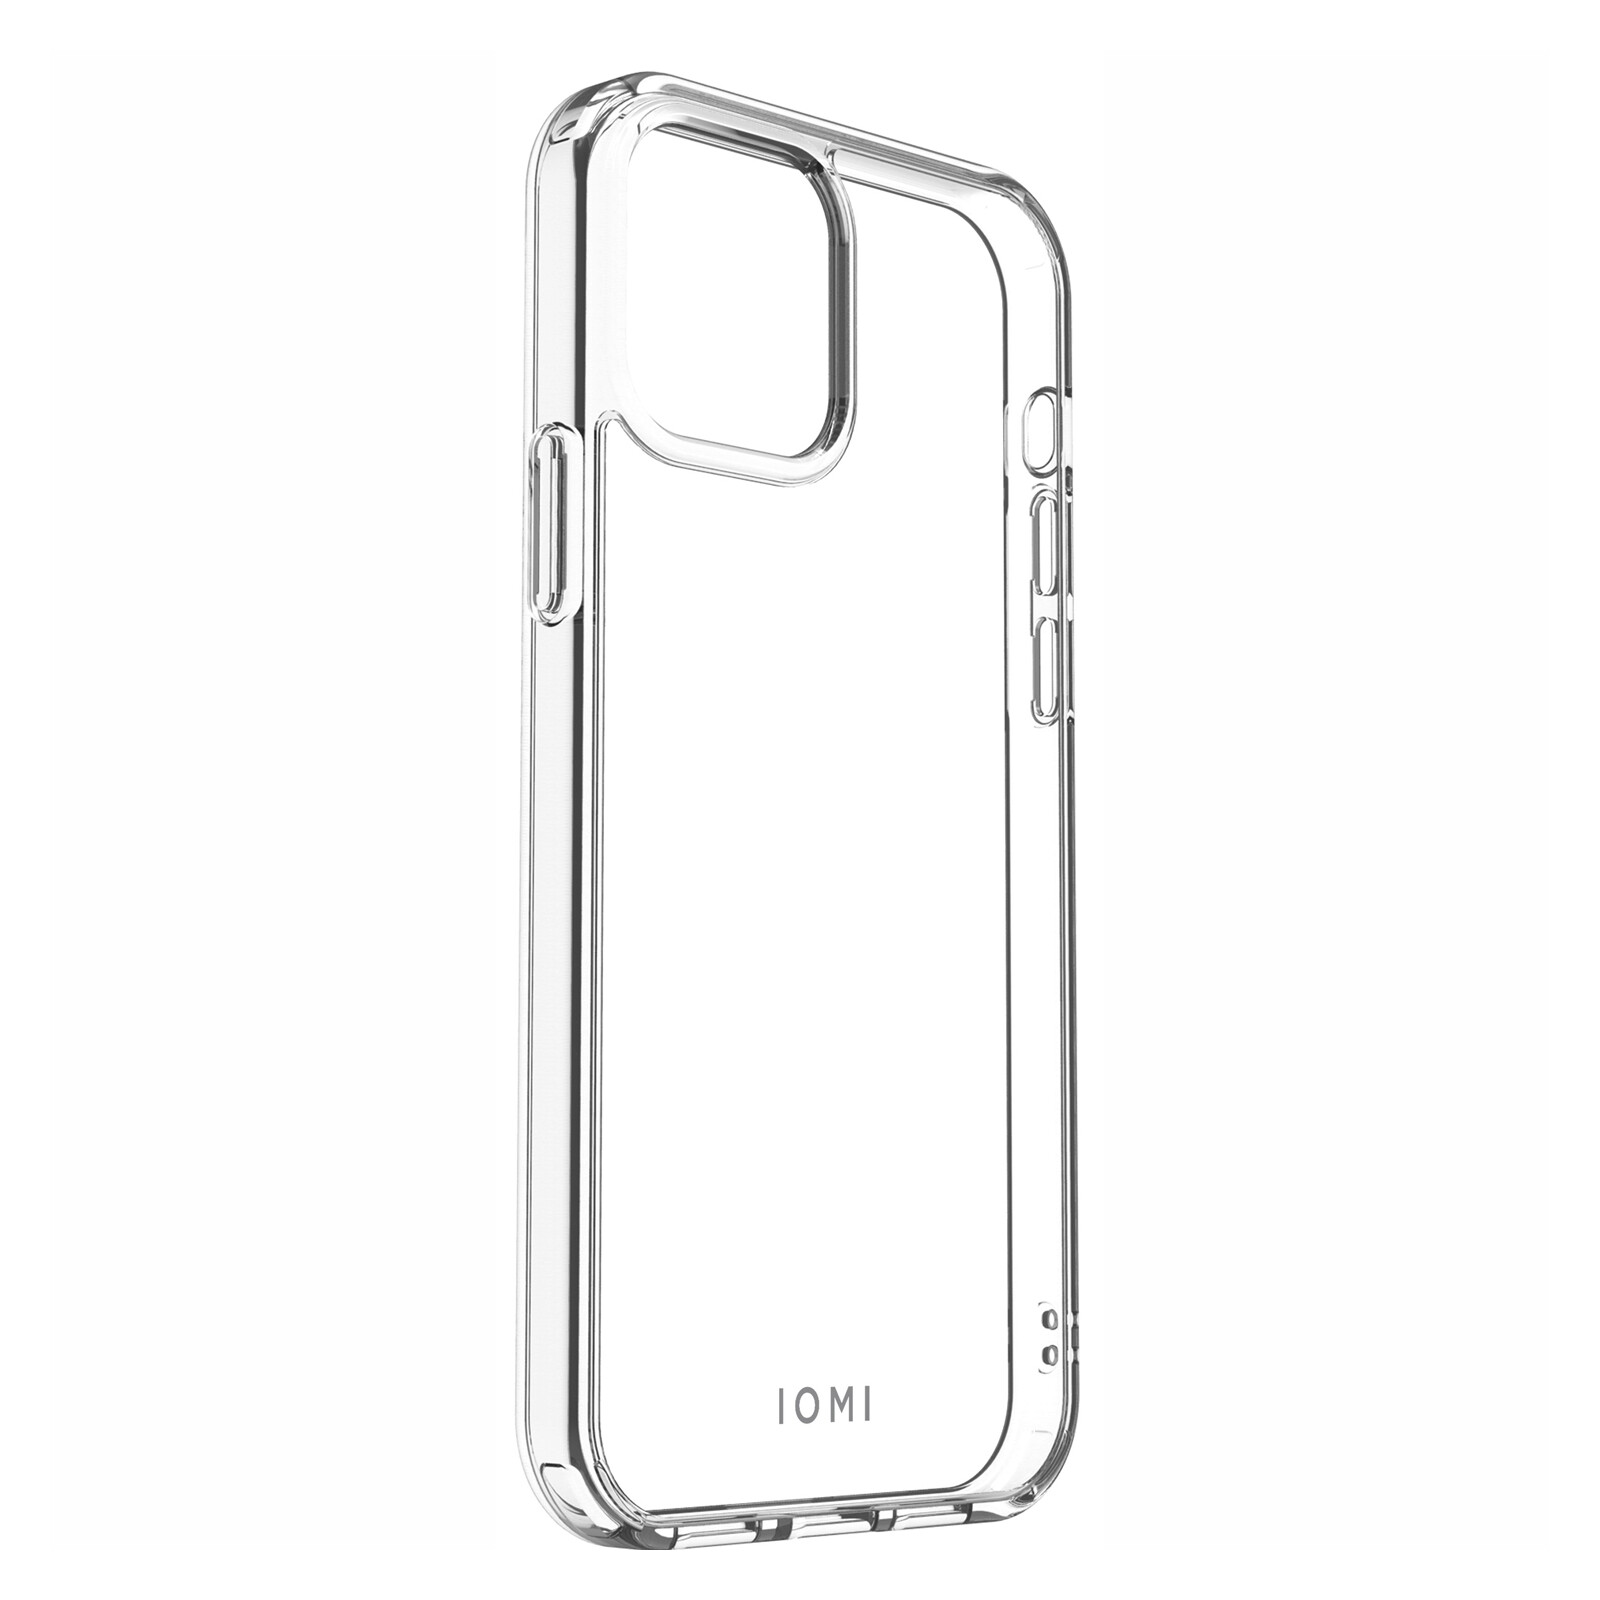 IOMI Backcover Shockproof Apple iPhone 12 Max/Pro